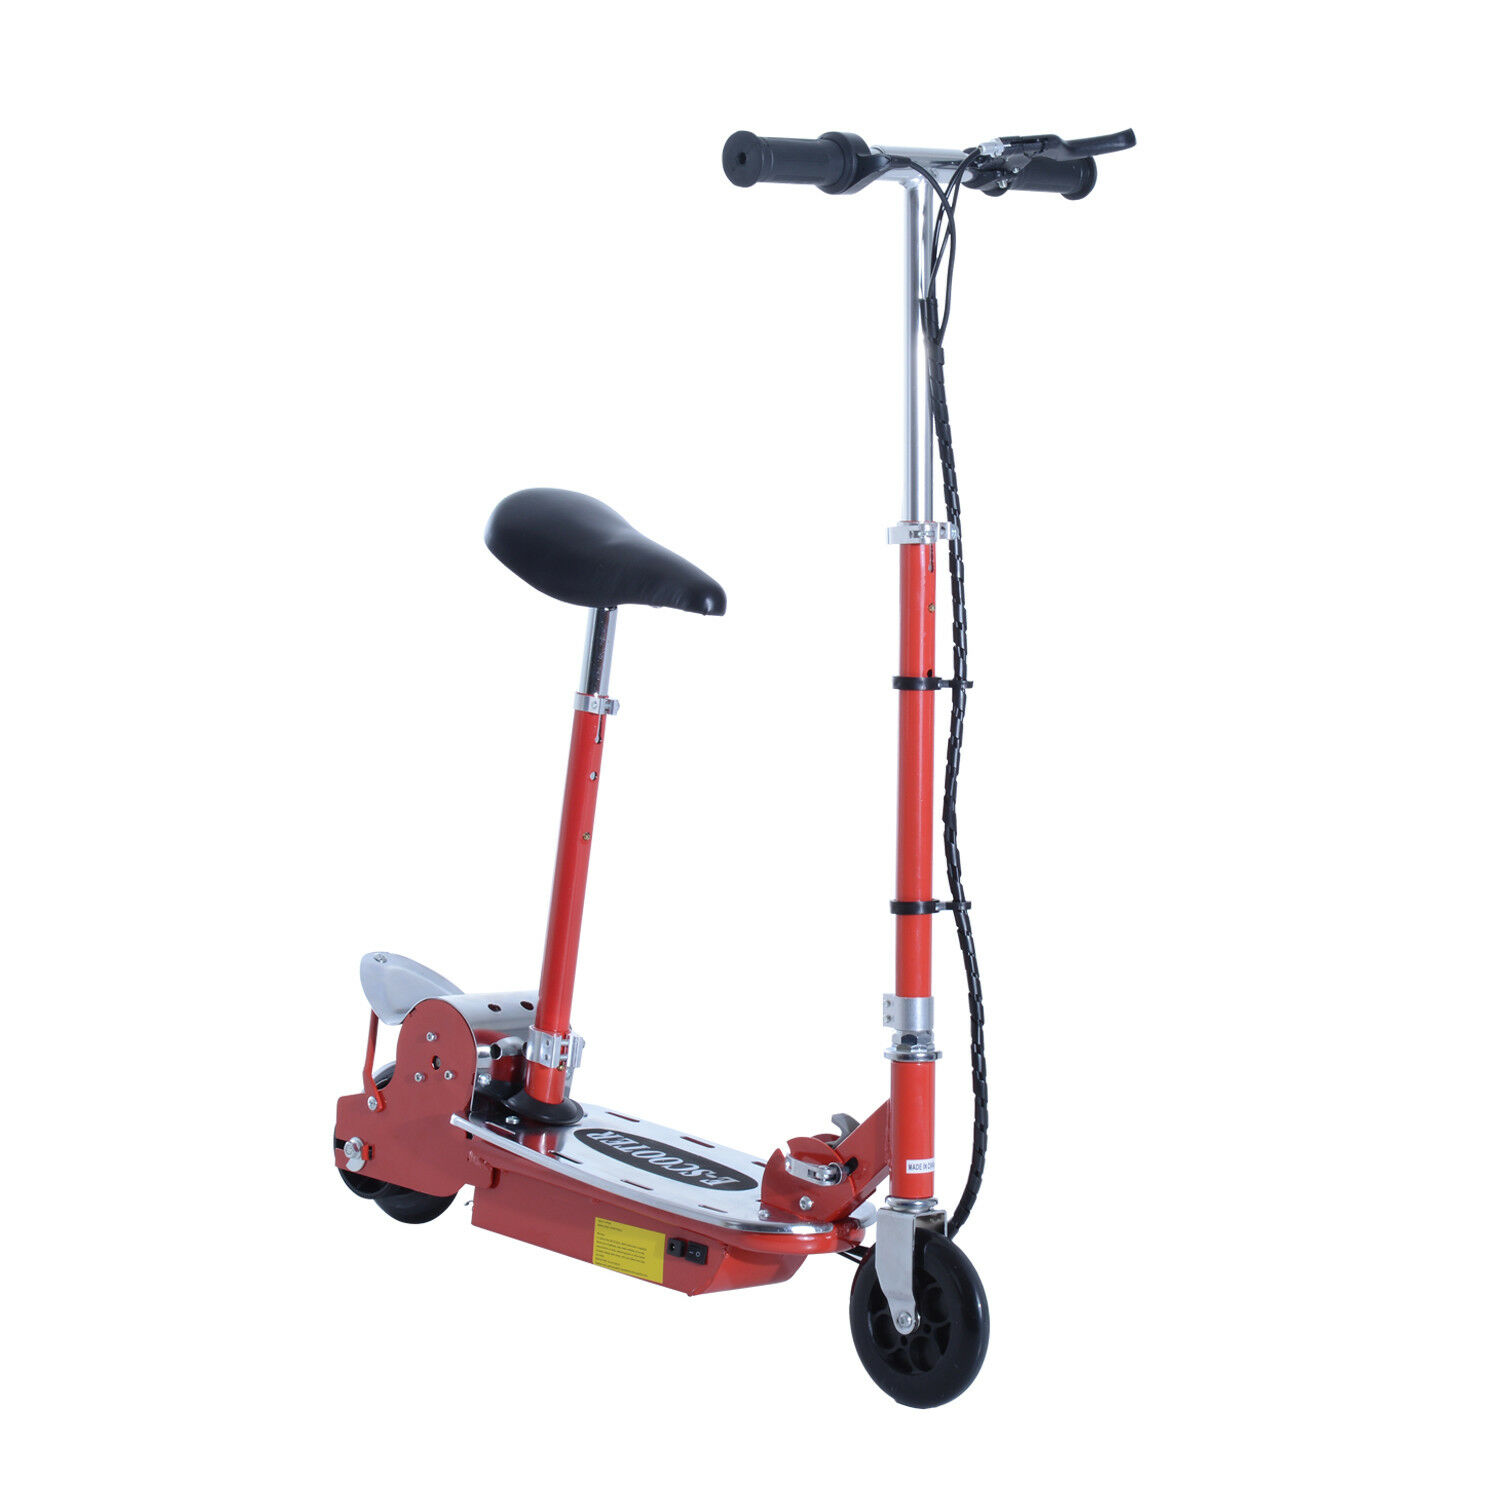 Qaba E-Scooter Street Bike Seated Electric Scooter Foldable Battery Rechargeable